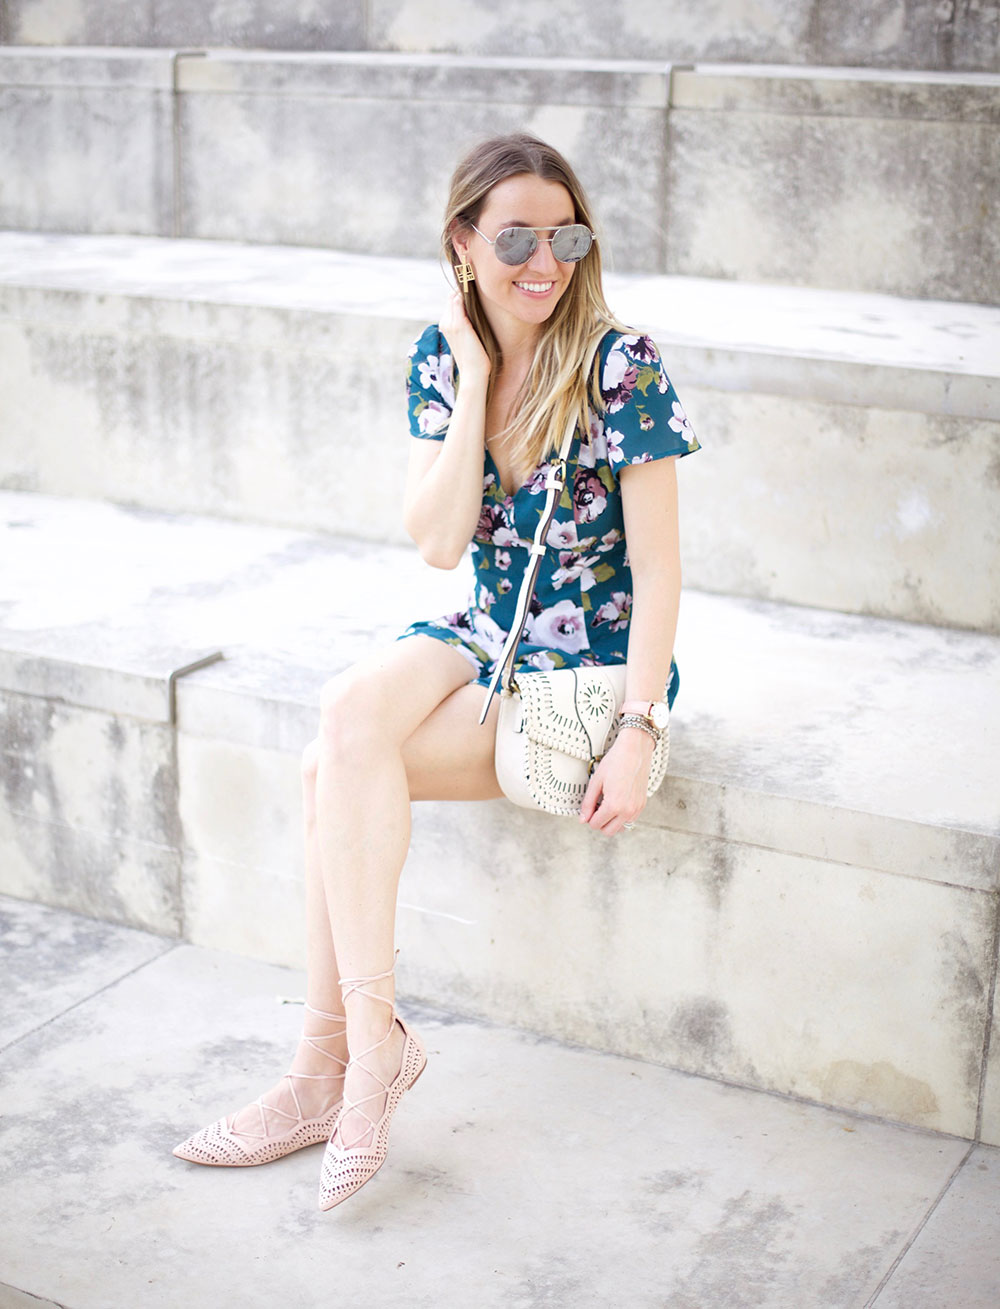 Floral Rompers for Spring by Austin fashion blogger Life By Lee